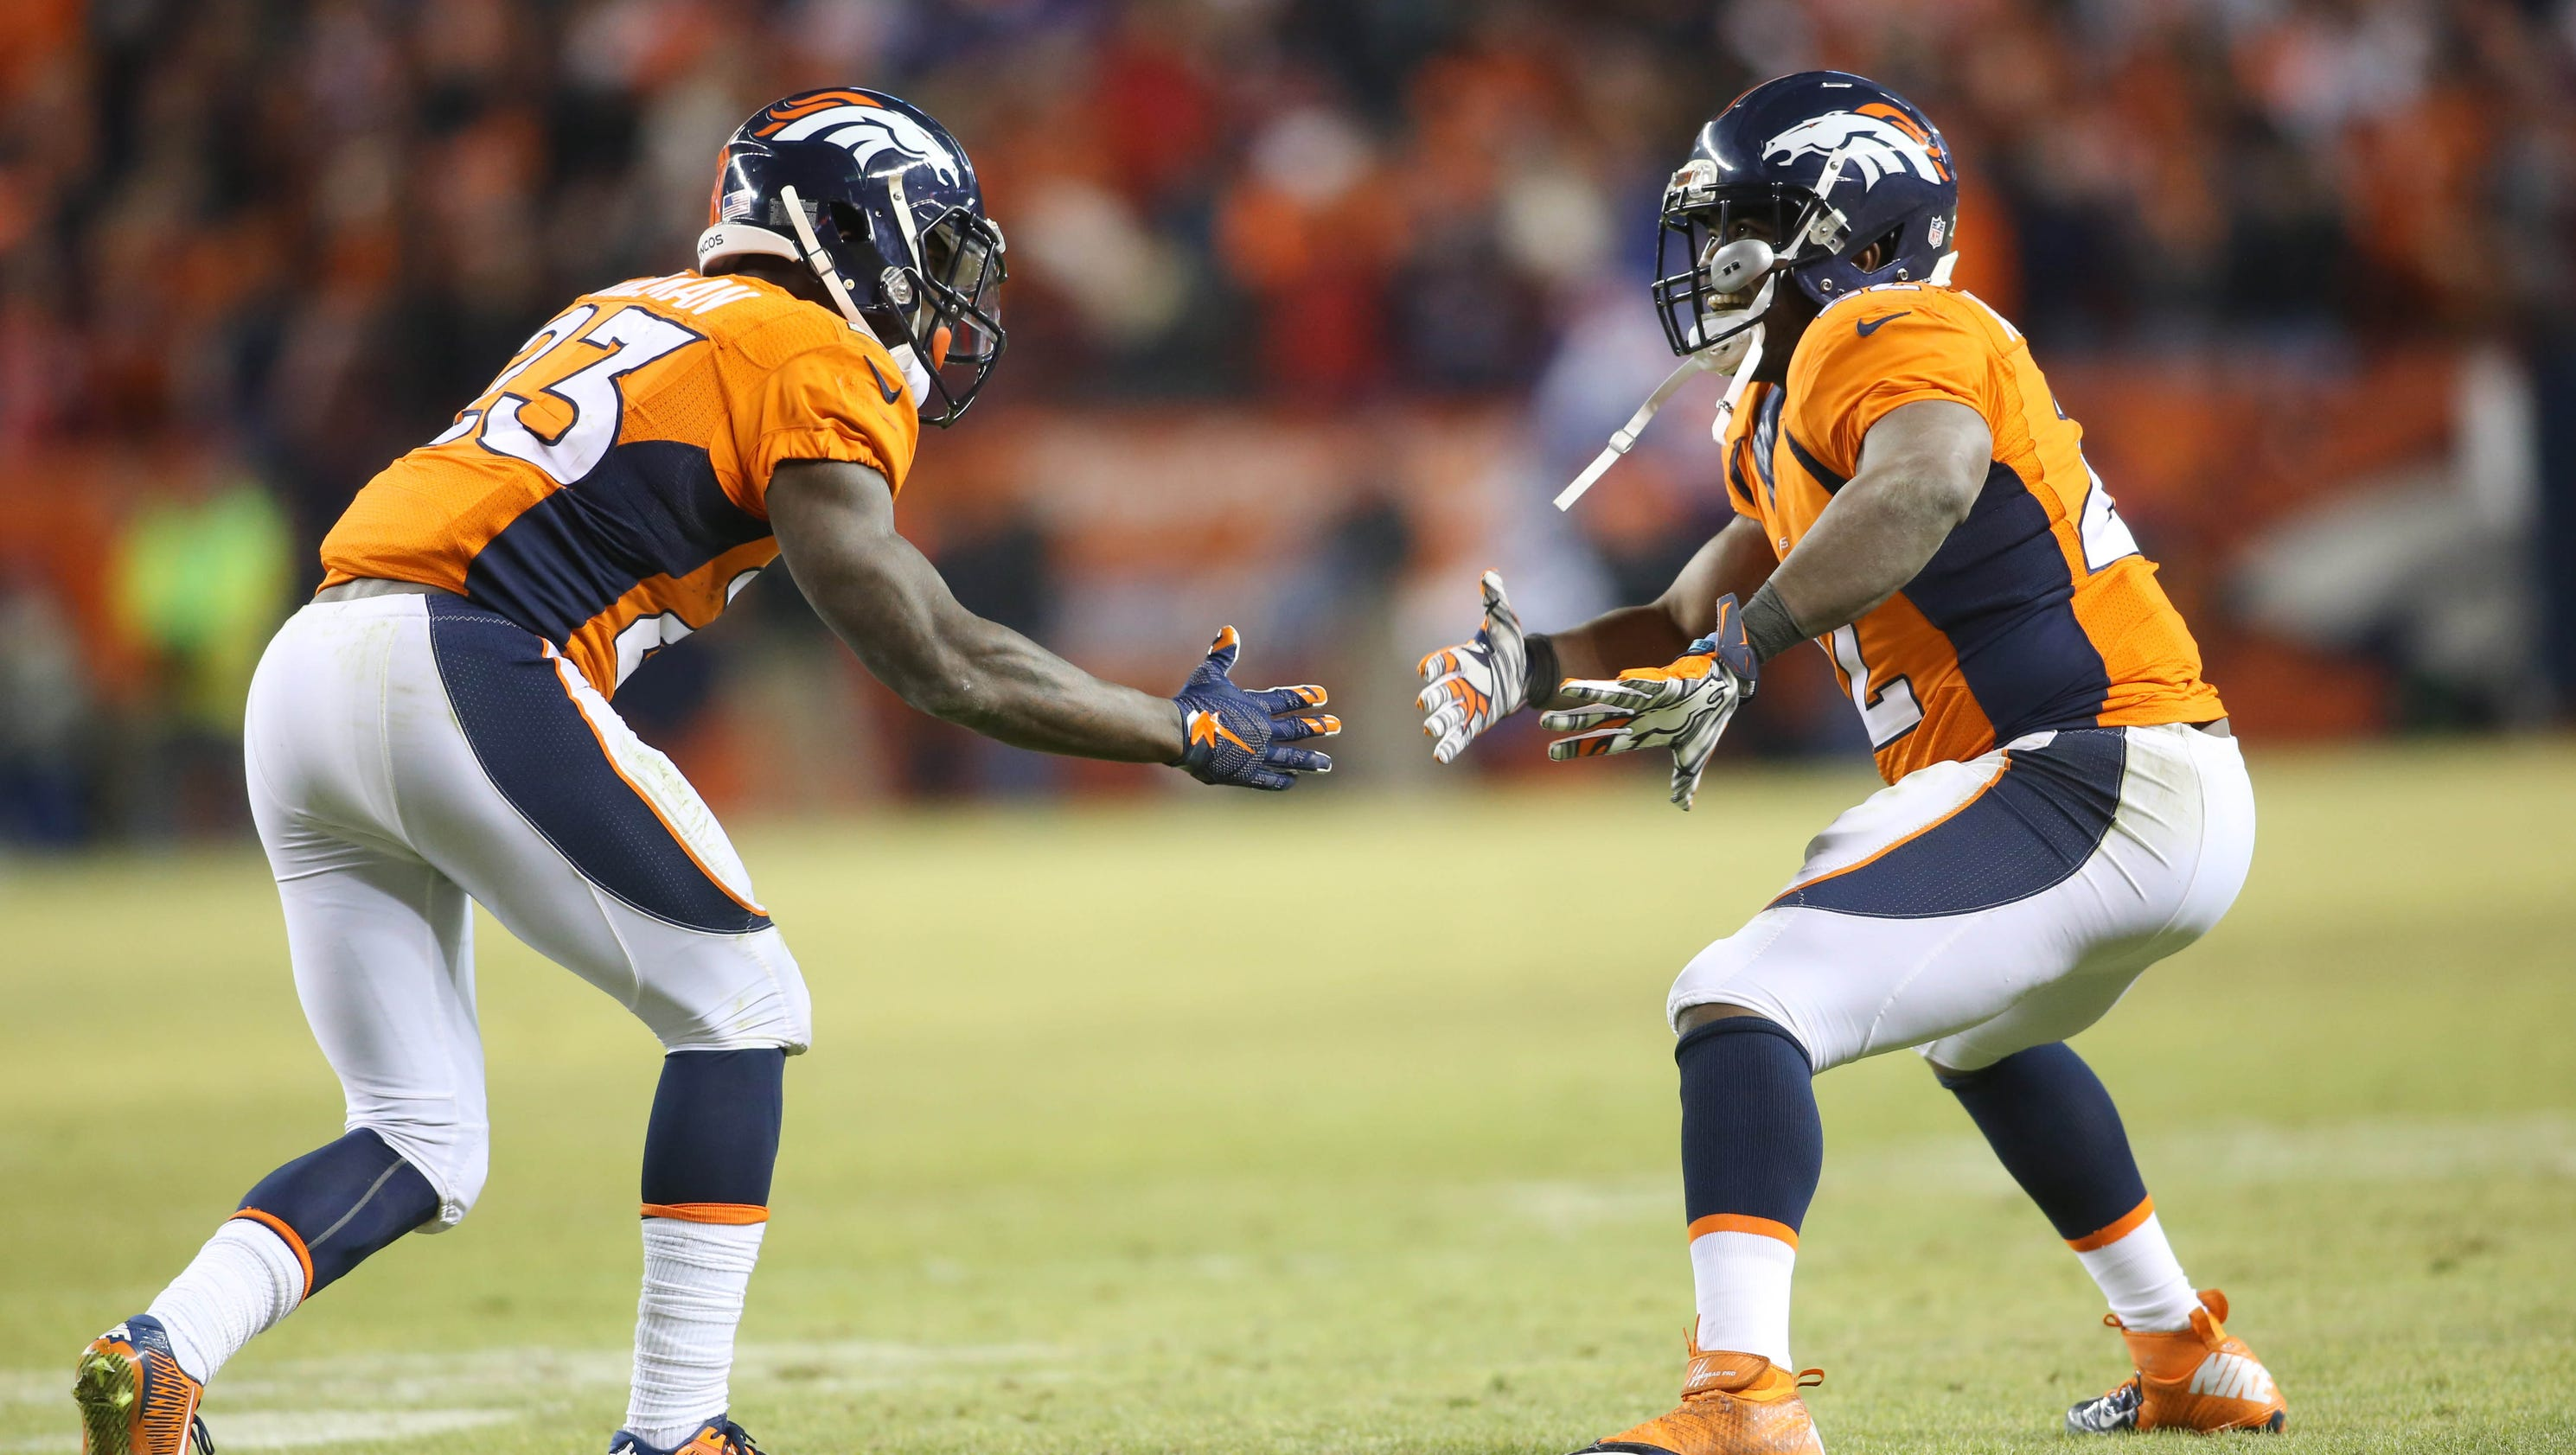 Broncos Rbs Know Playoff Hopes Might Come Down To Them